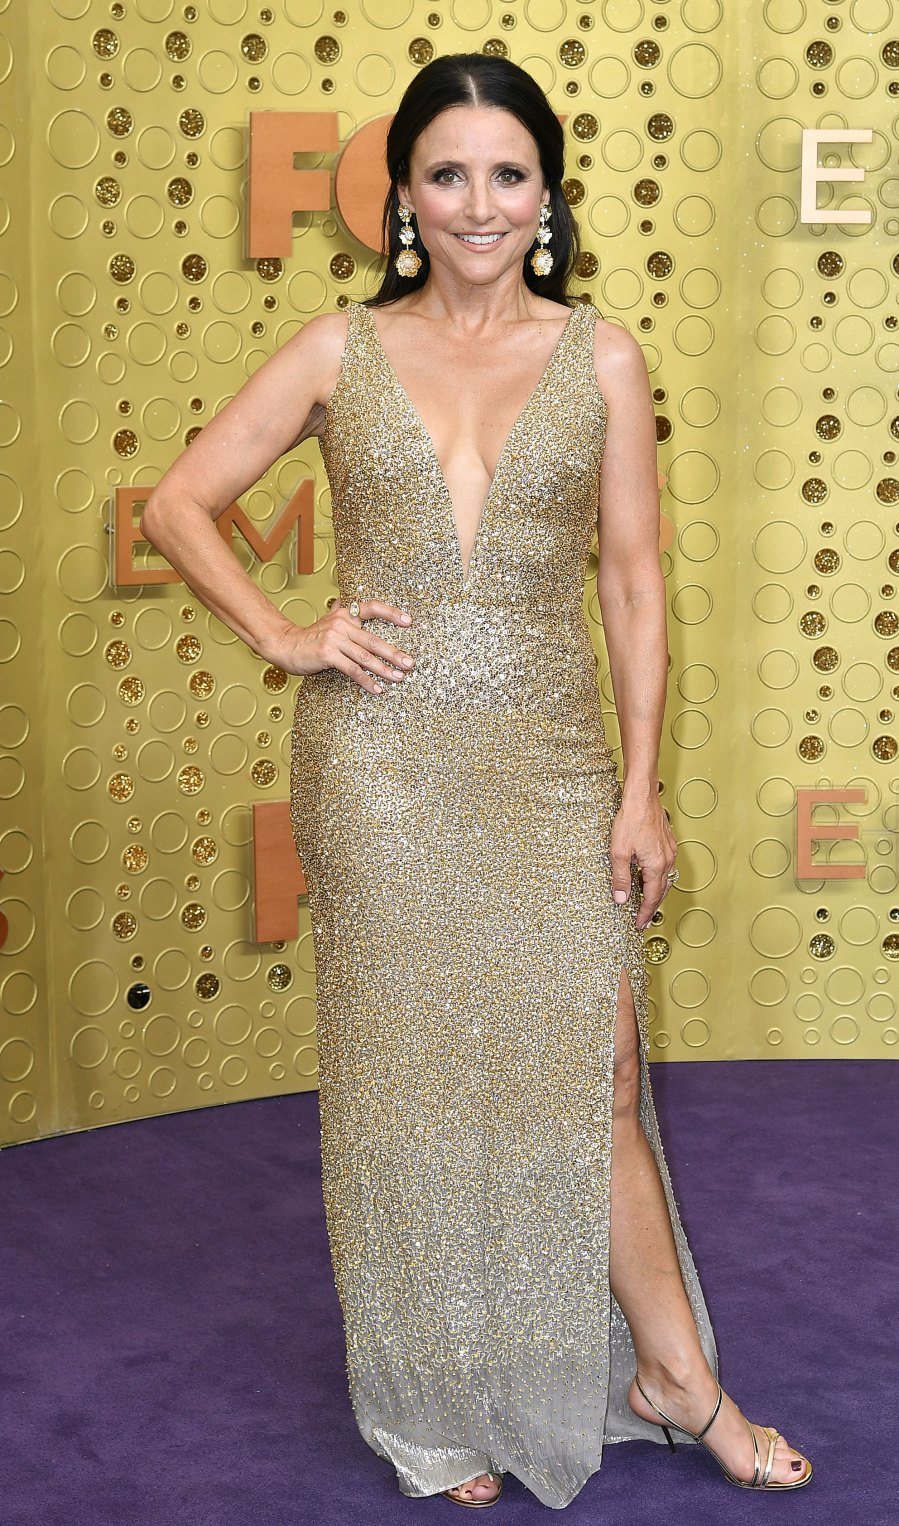 Emmys 2019 Nearly Naked - Julia Louis-Dreyfus